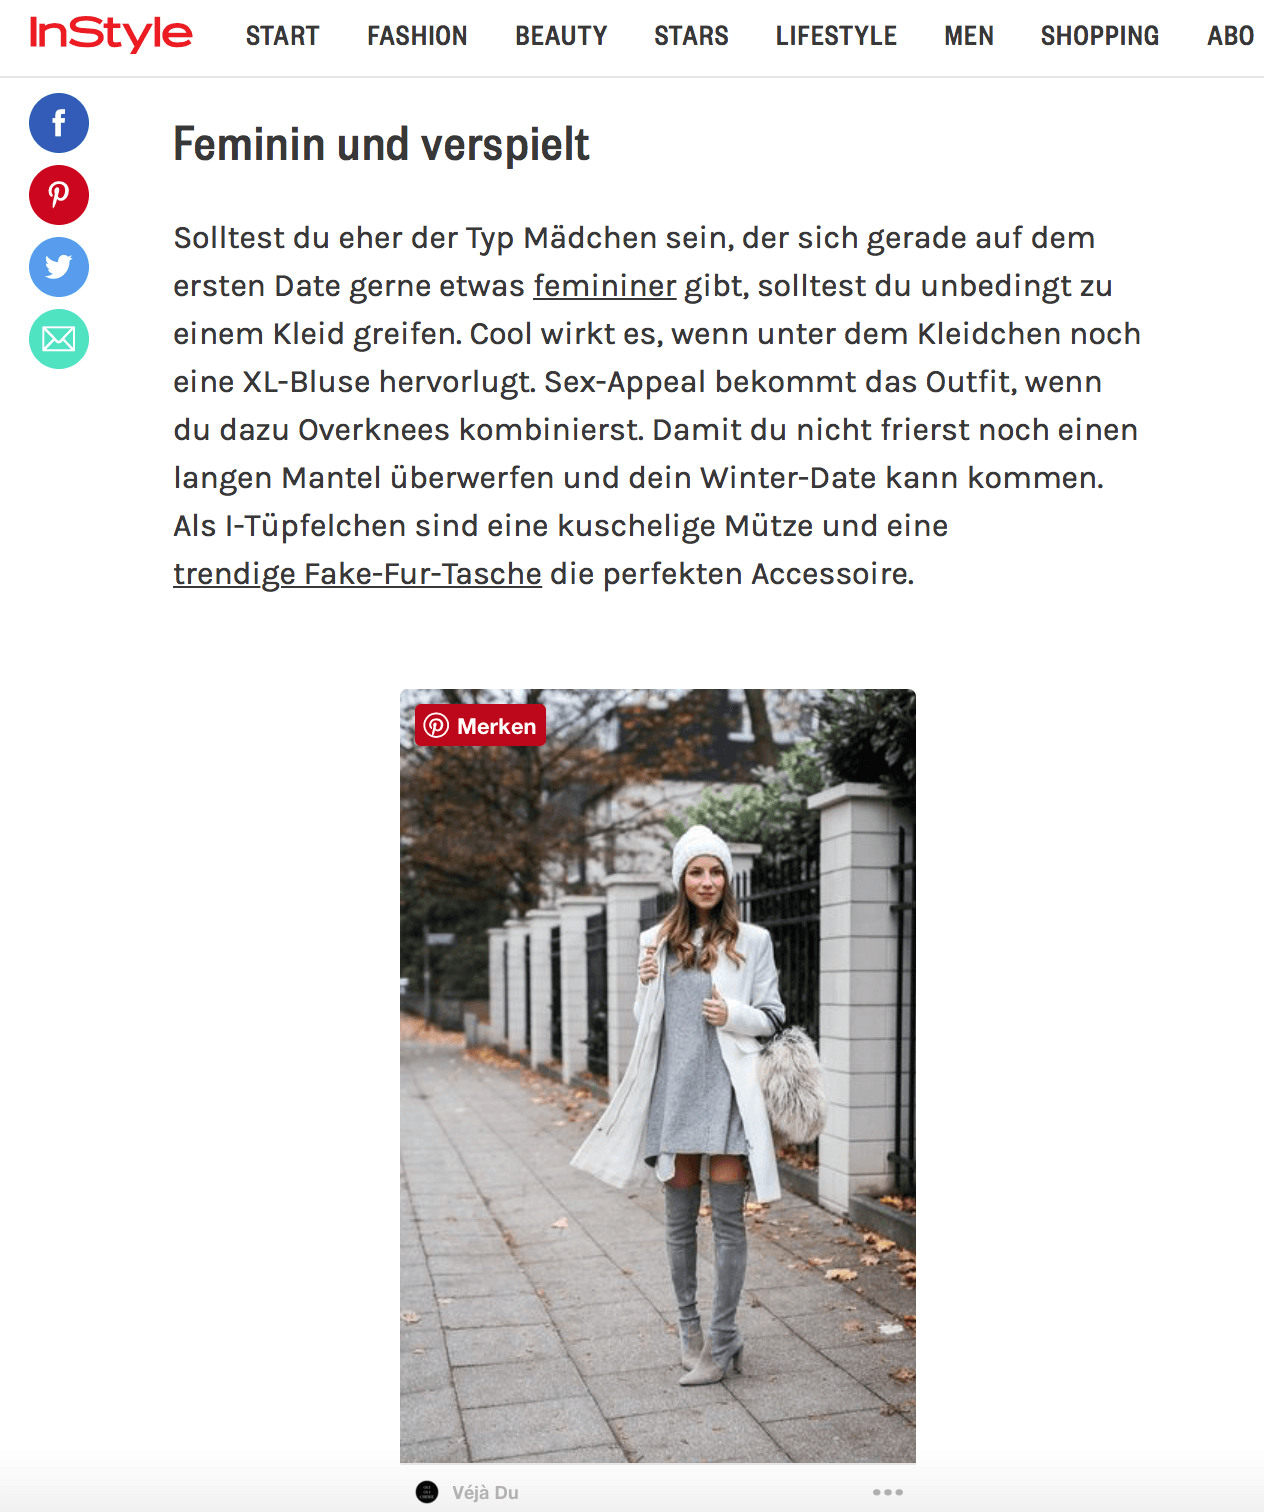 instyle outfit stephanie van klev press feature fashion blog veja du